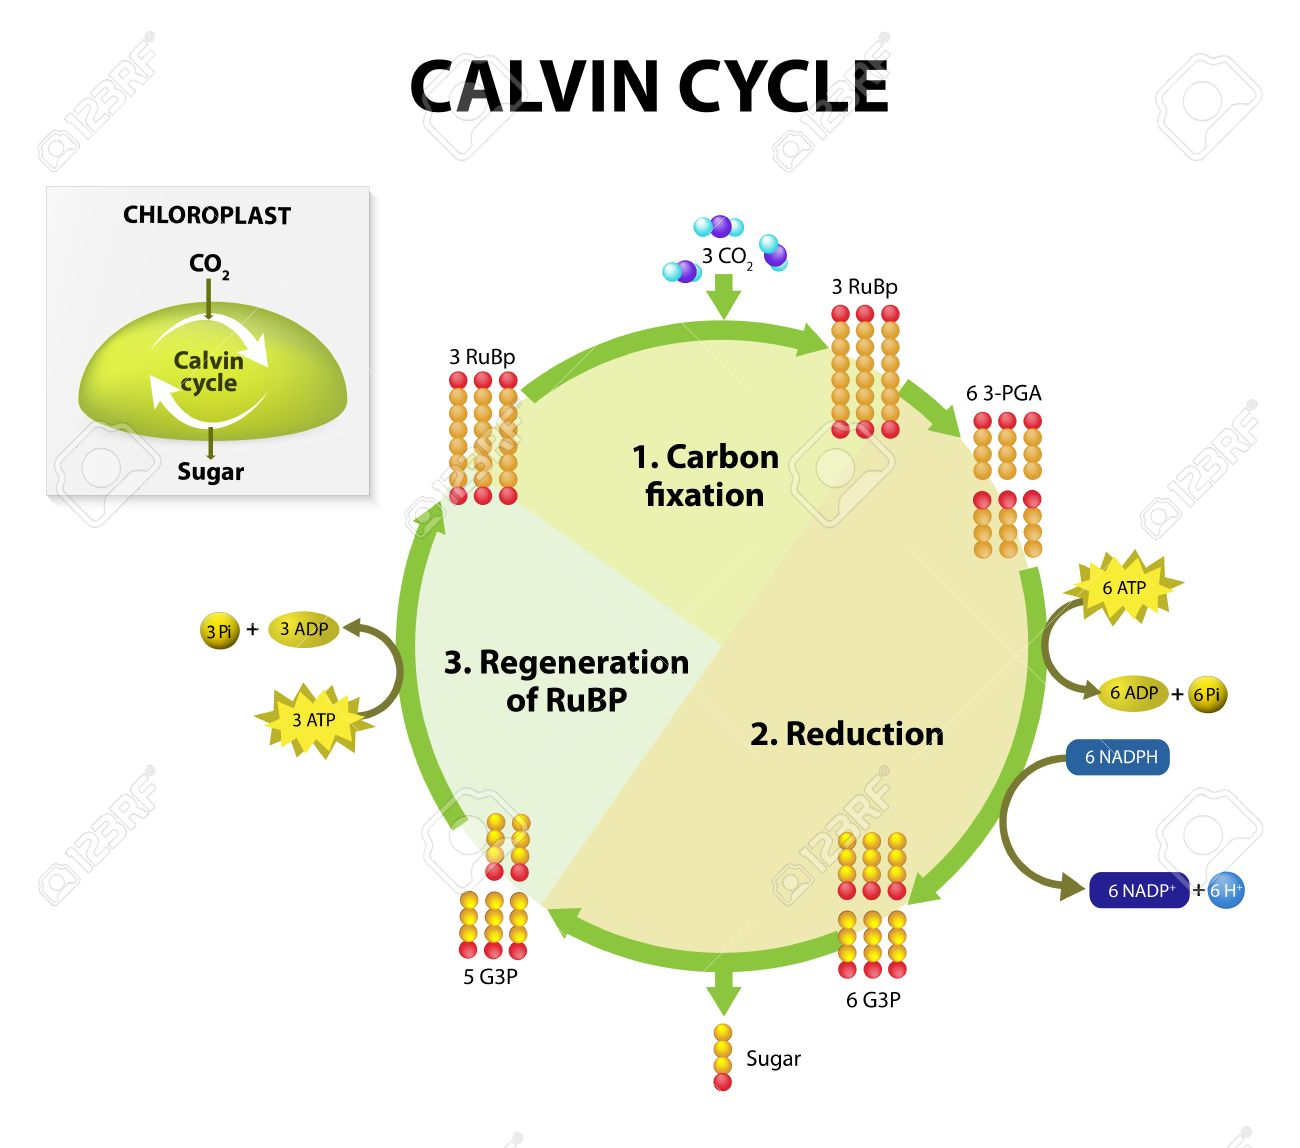 Photosynthesis calvin cycle in chloroplast calvin cycle makes photosynthesis calvin cycle in chloroplast calvin cycle makes sugar from carbon dioxide this ccuart Images